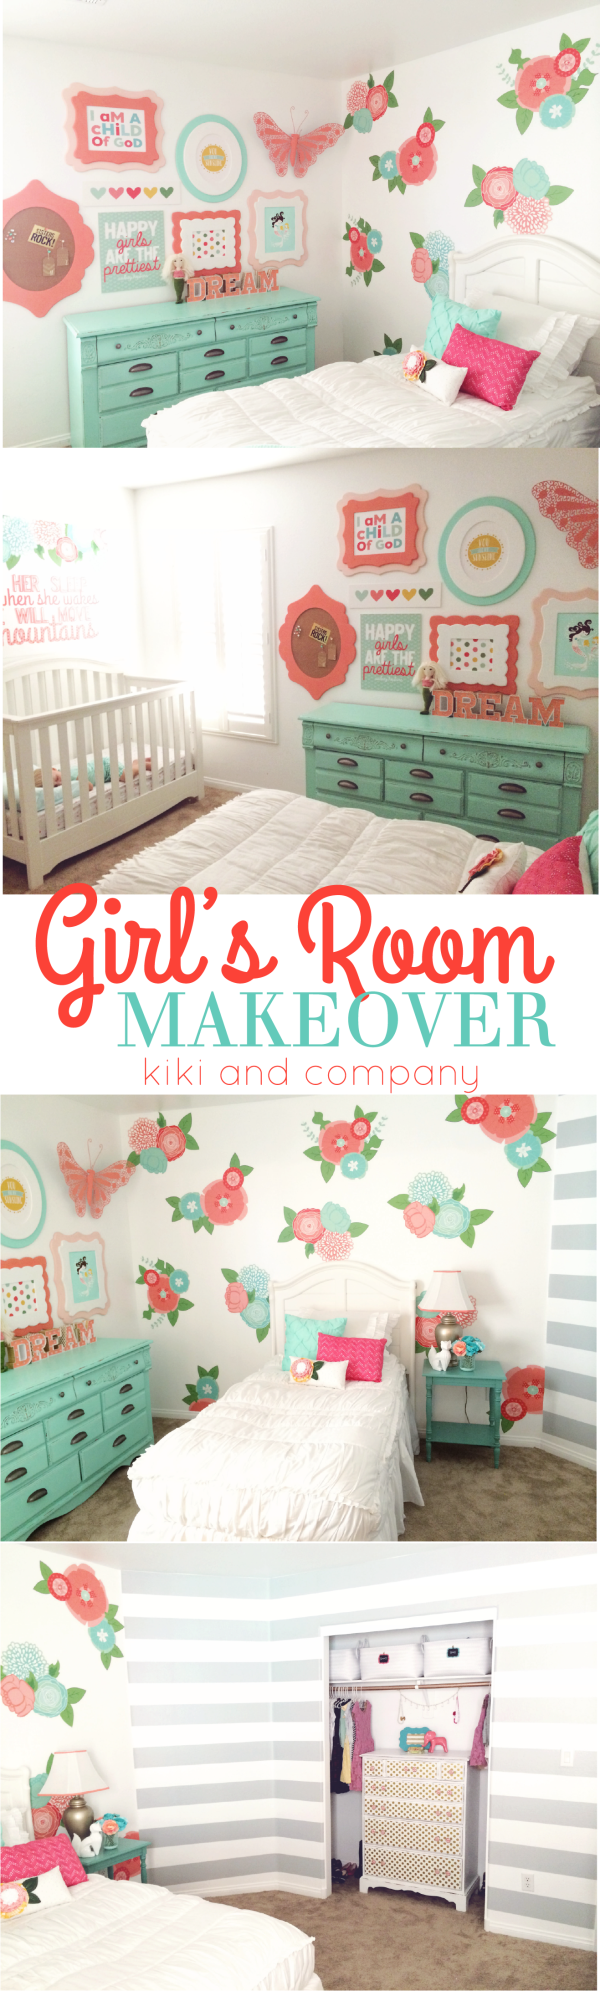 Girl's Room Makeover at Kiki and Company. This ROOM!